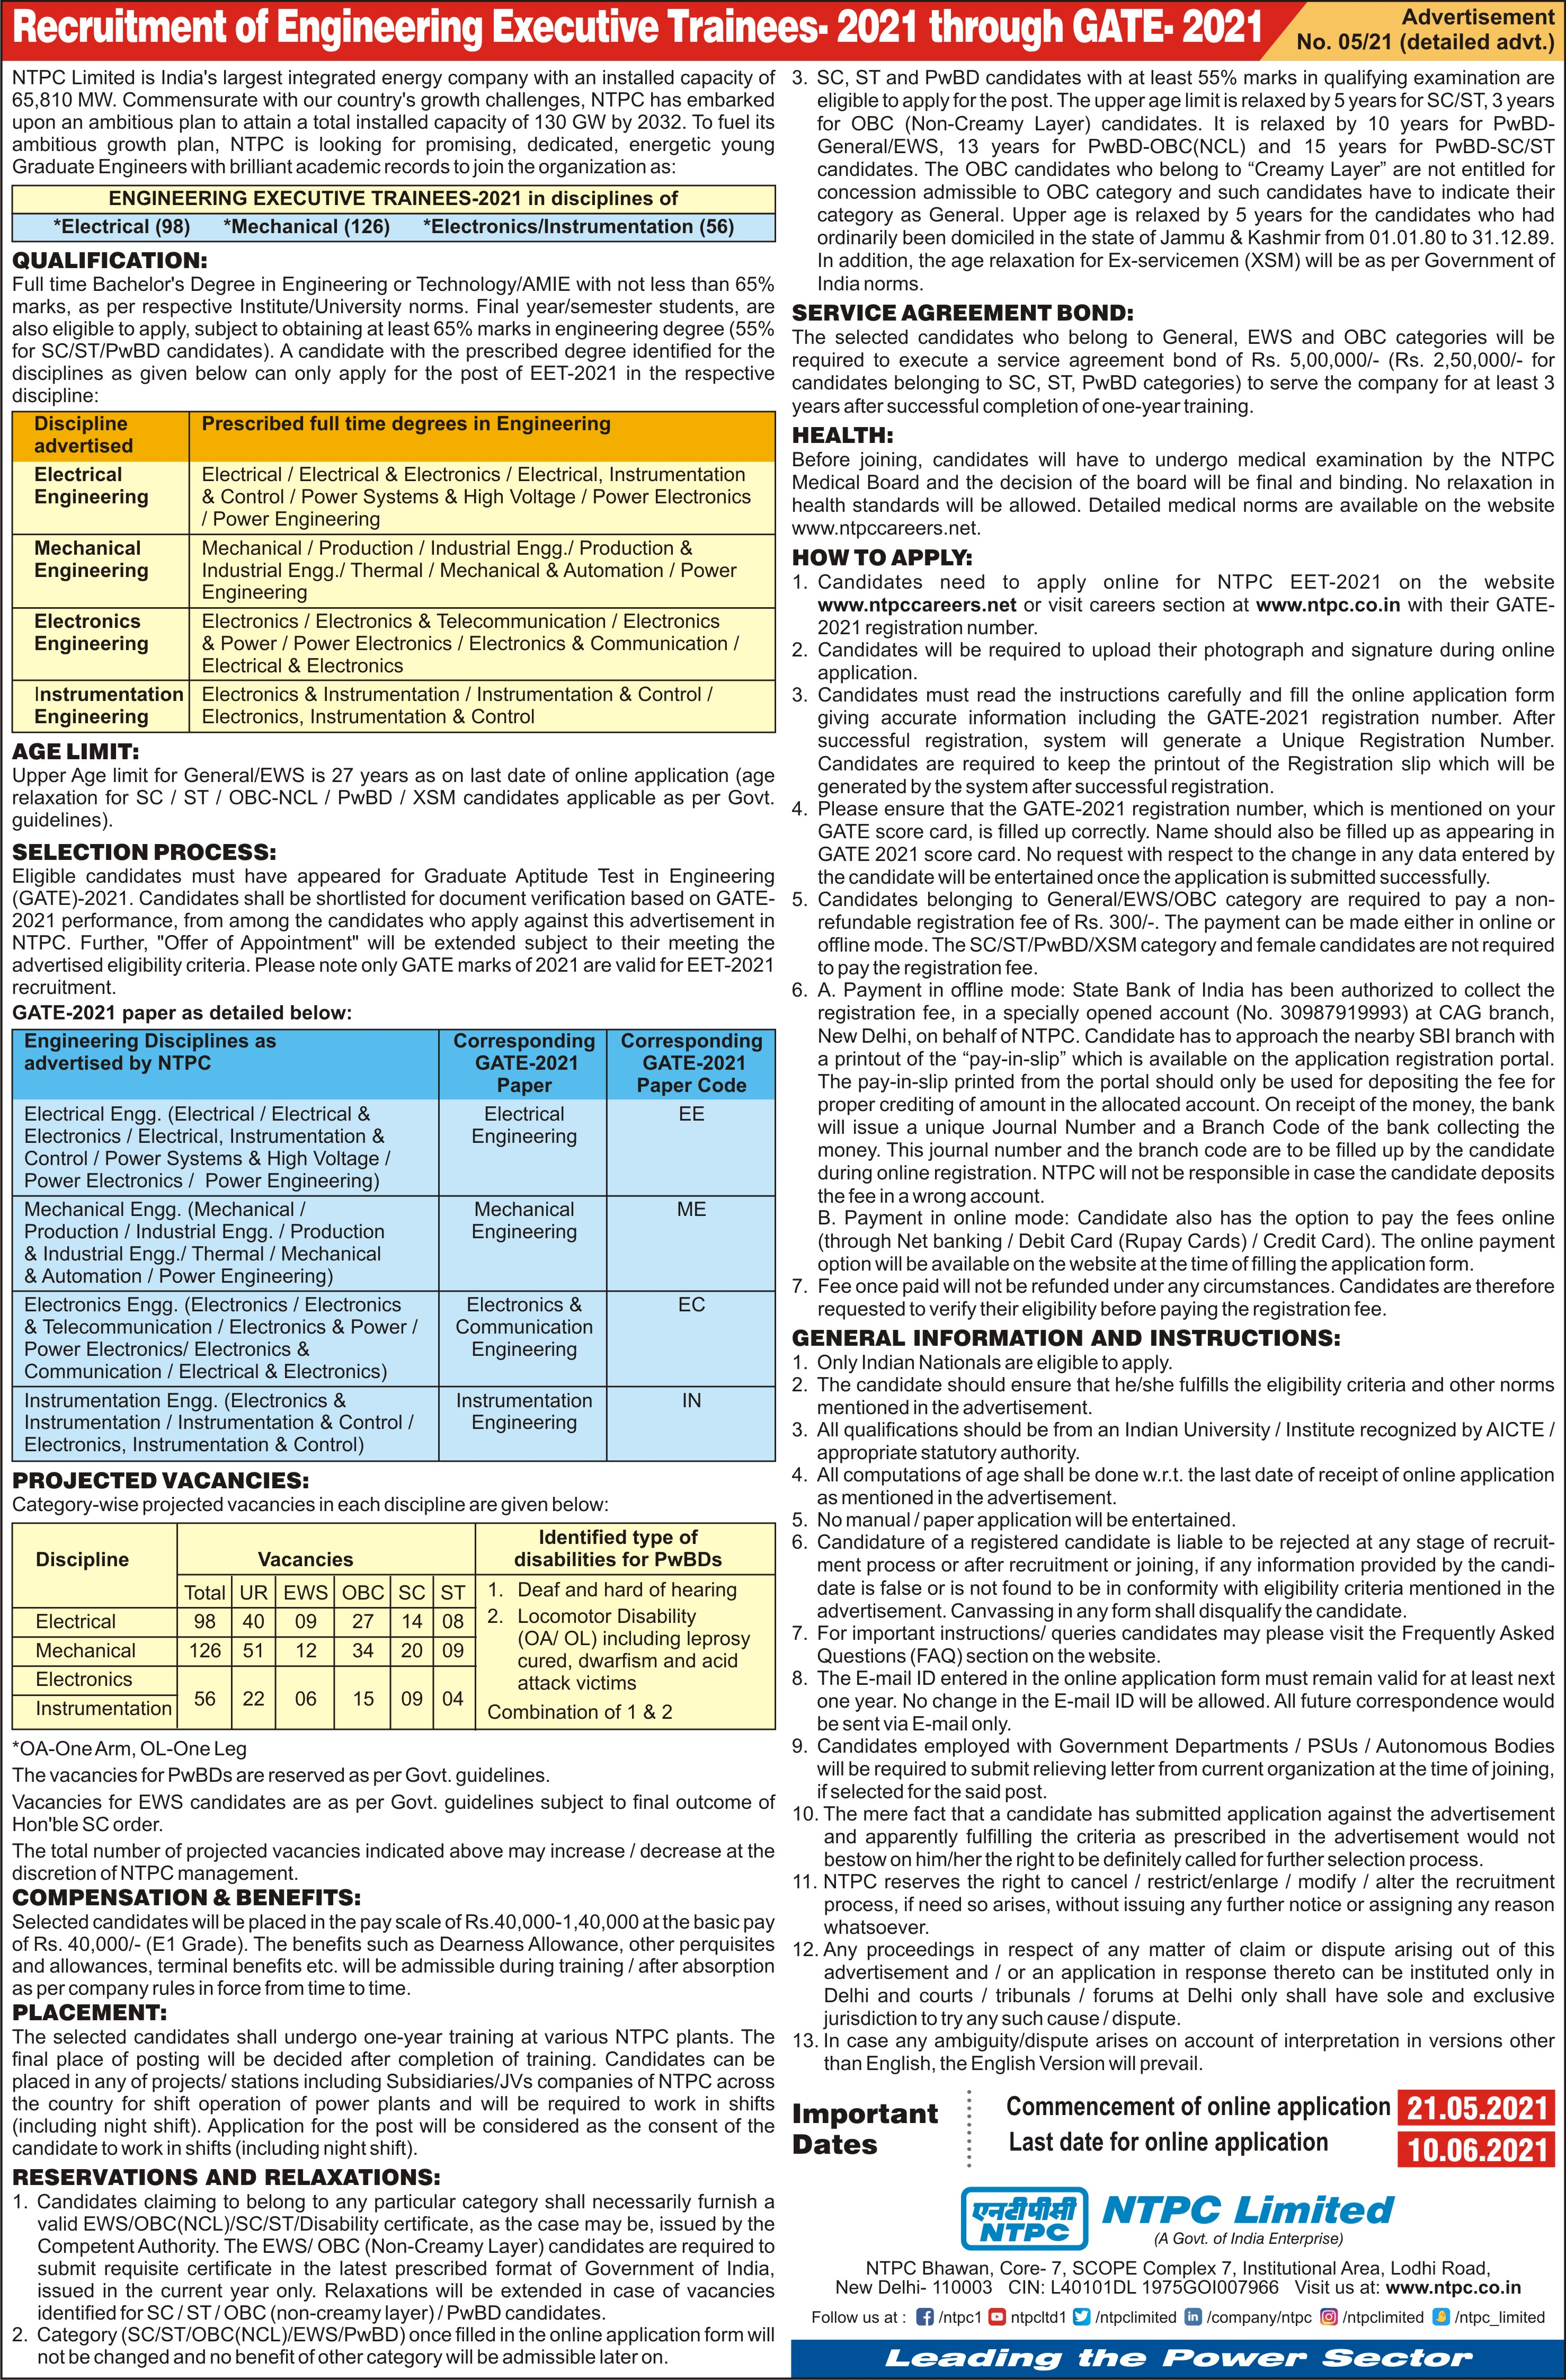 NTPC Employment news ad may 2021